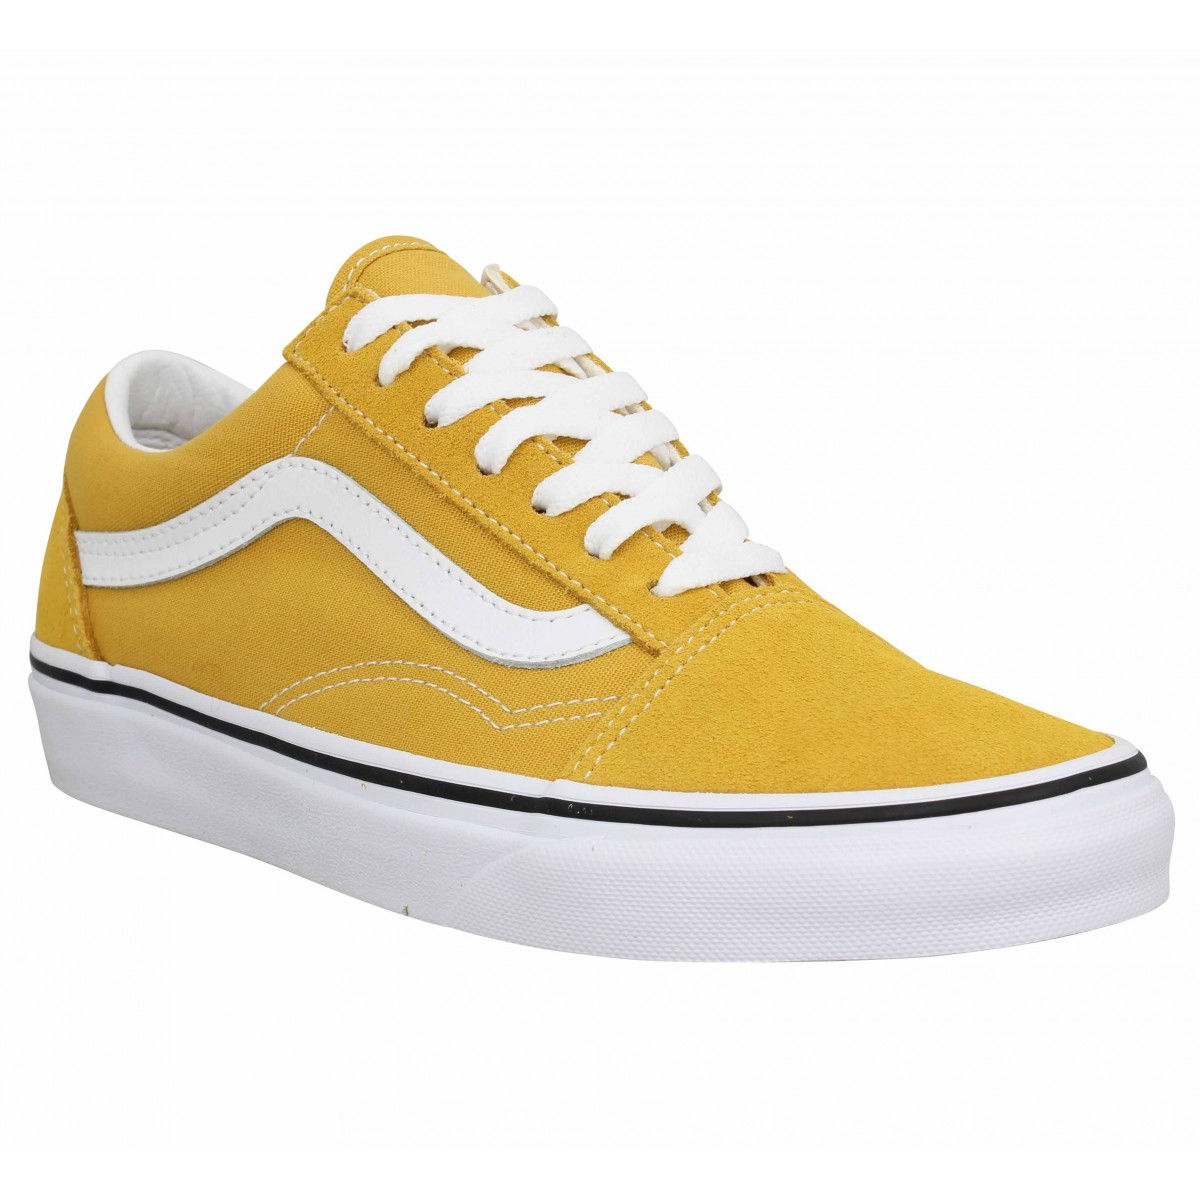 VANS Old Skool velours toile Jaune